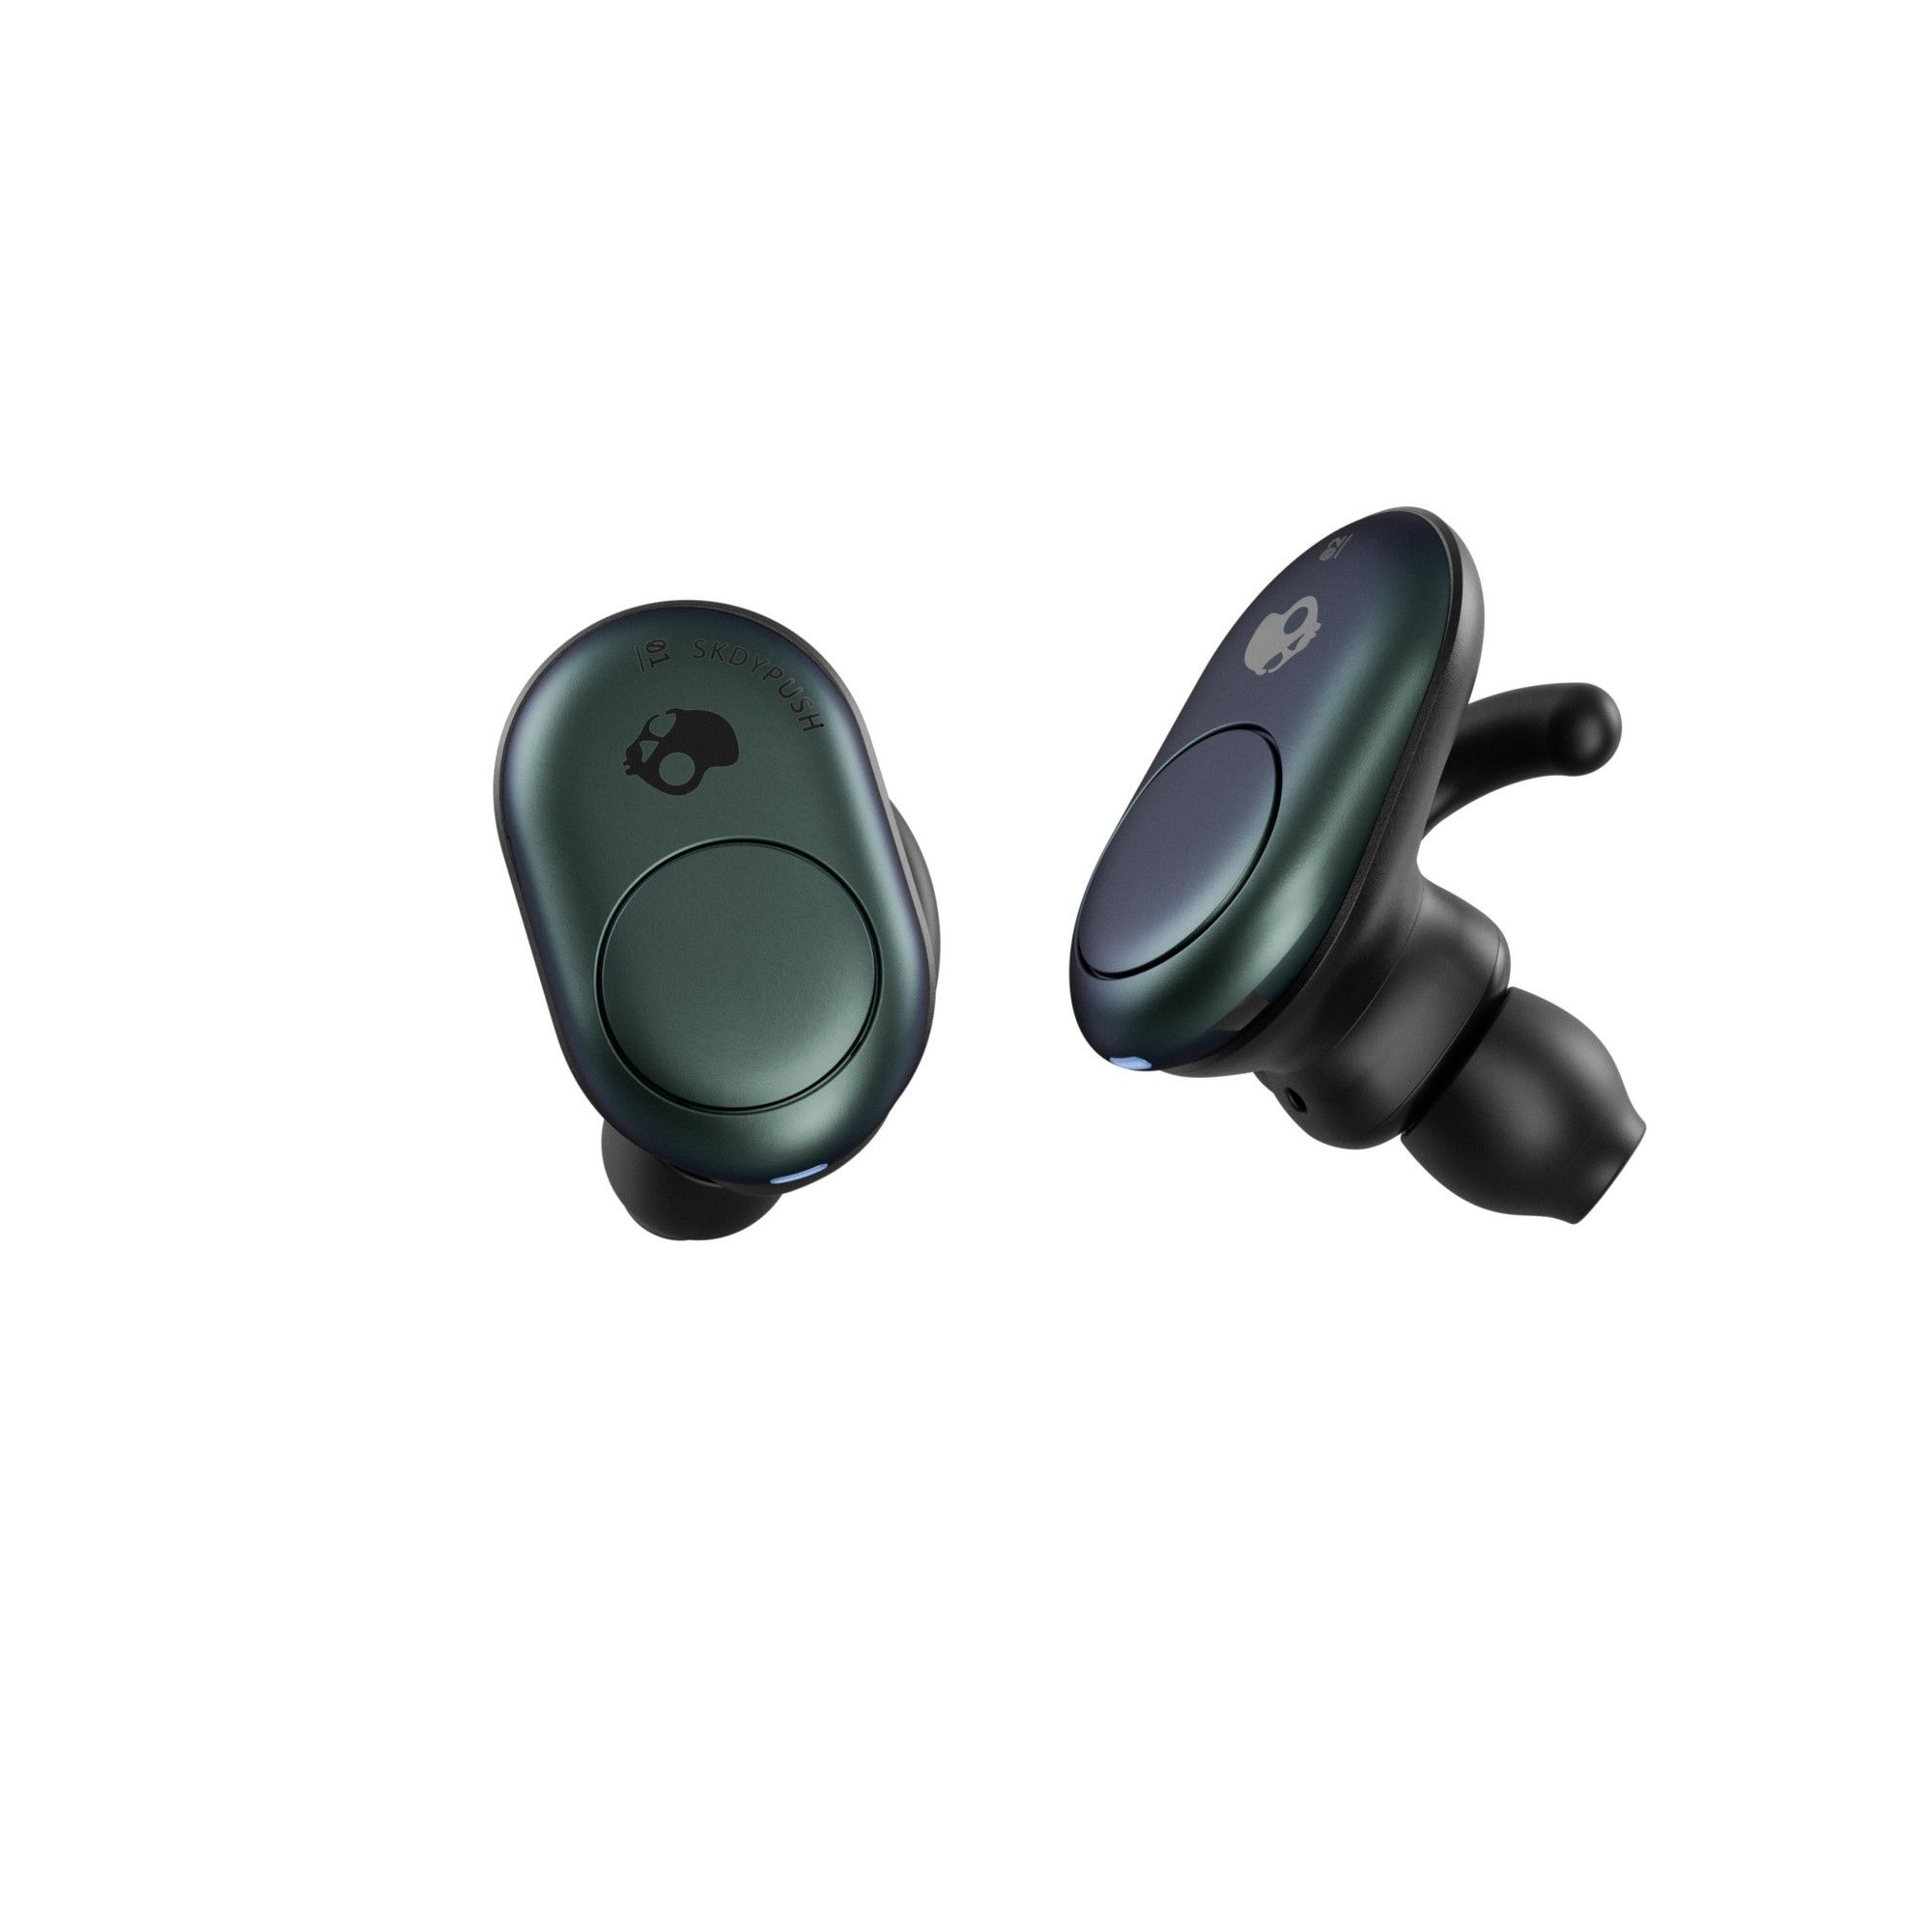 85b789fdaf7 Skullcandy Push Wireless Earbuds - Psycho Tropical | Products ...